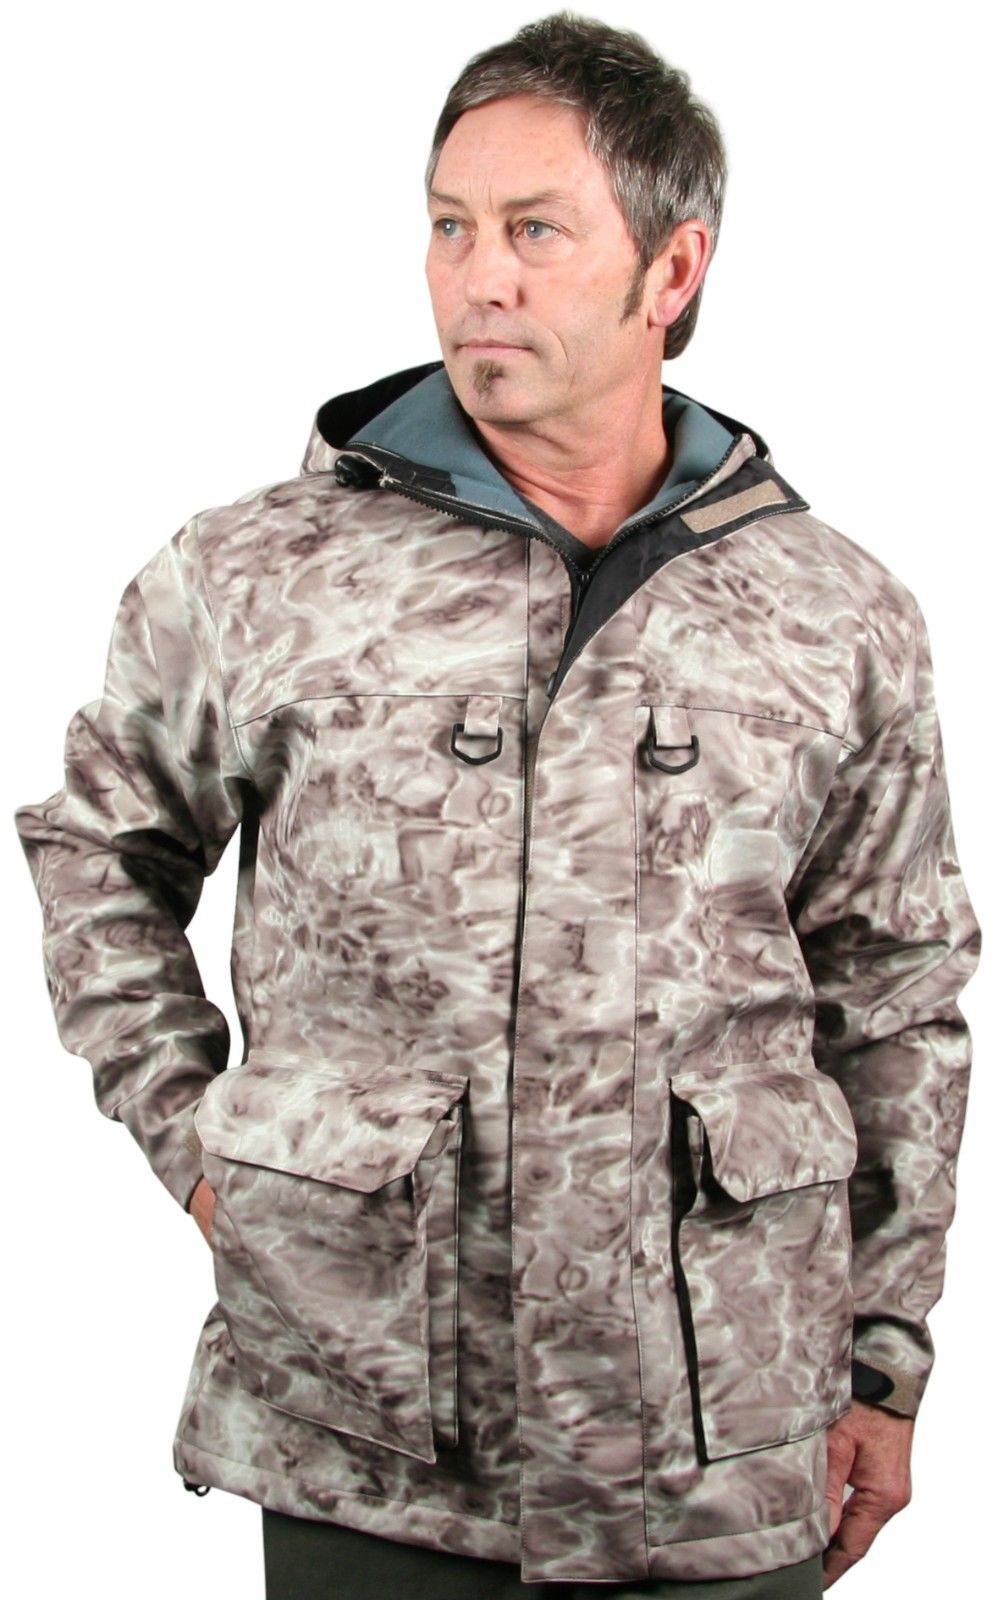 Aqua Design Men Stormshield Insulated Fishing Hunting Pro DWR Water Camouflage Wading Rain Coat Jacket by Aqua Design